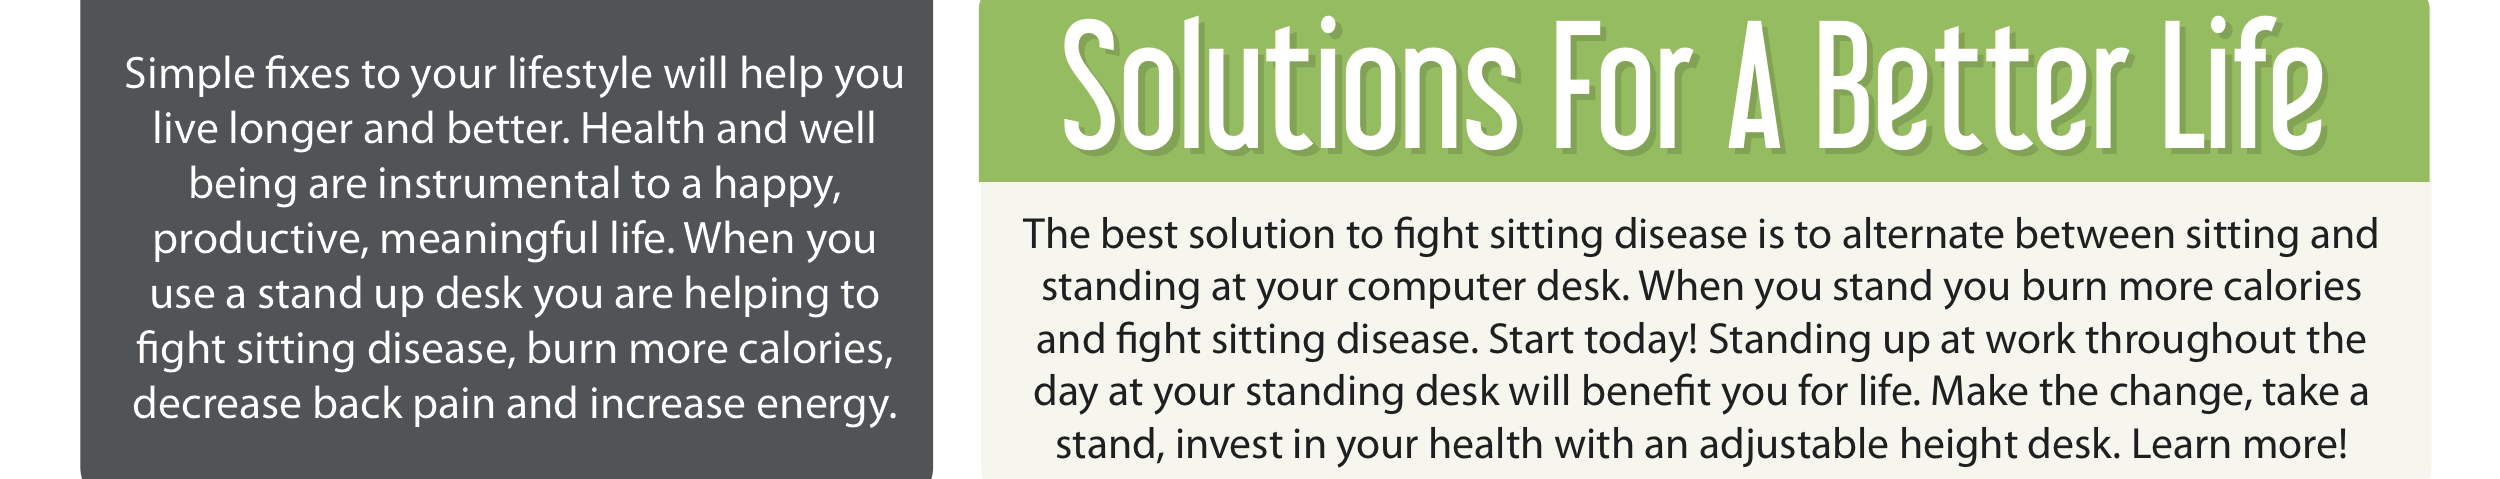 standing-desk-solutions-for-a-better-office-furniture-with-health-benefits.jpg